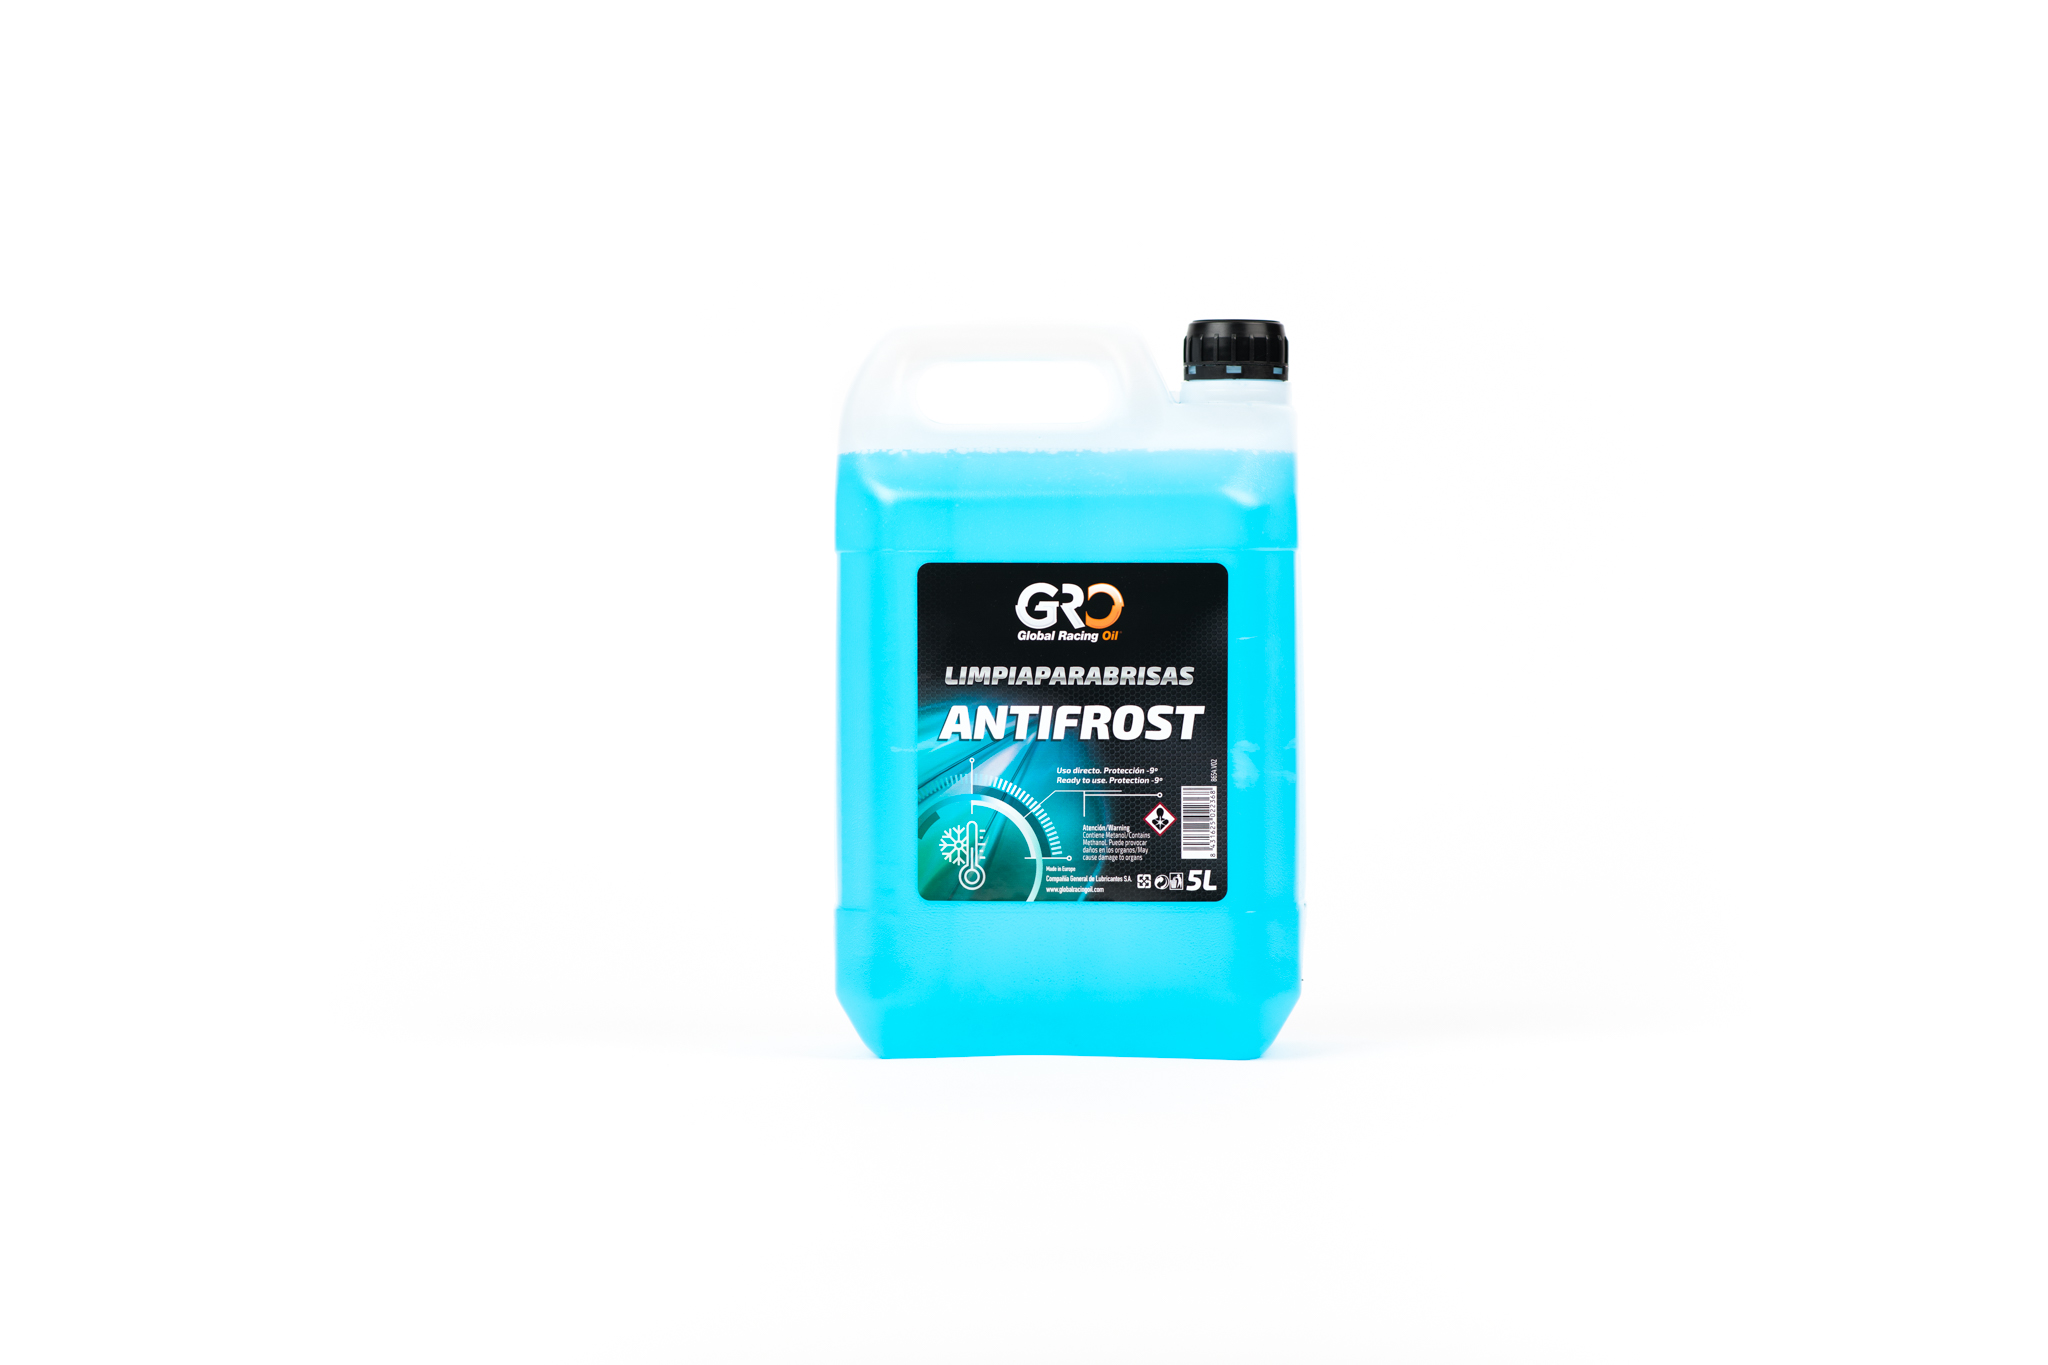 gro limpiaparabrisas antifrost (global glass cleaner) 5l